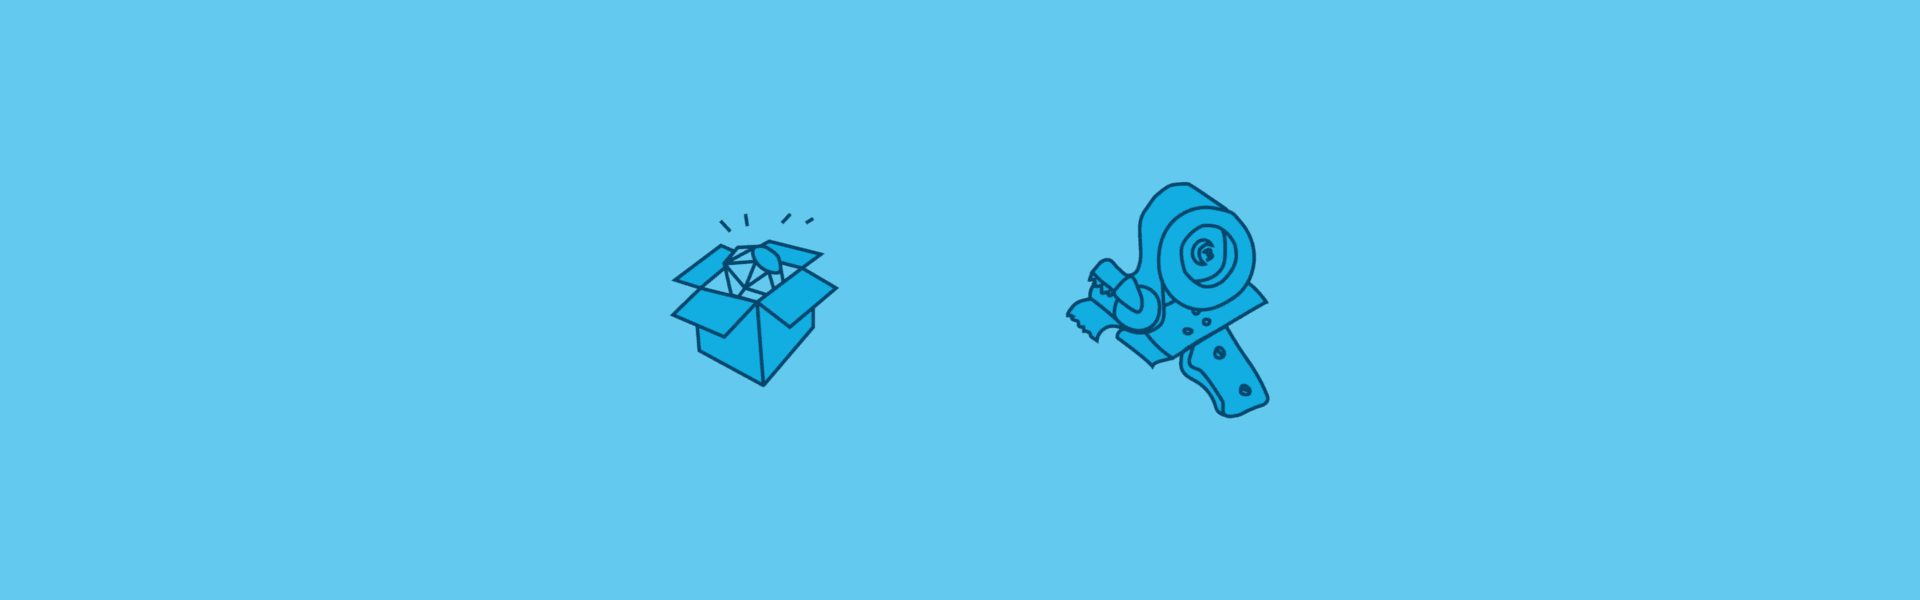 Two illustrations from the Bundler website. One signifies installing a Ruby gem and the other Bundler itself.